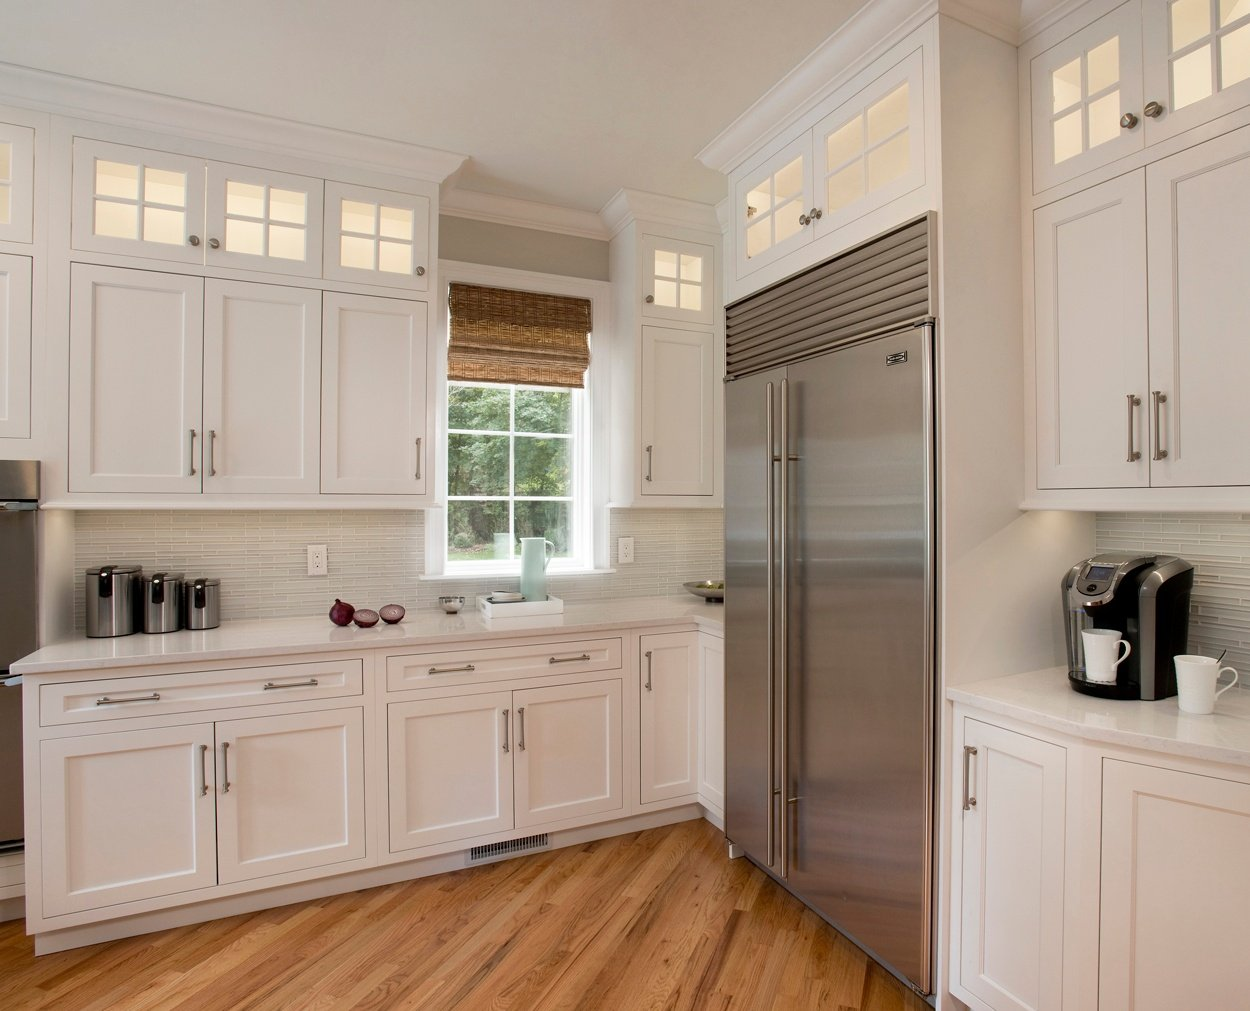 The corner of a classic white kitchen with Subzero refrigerator